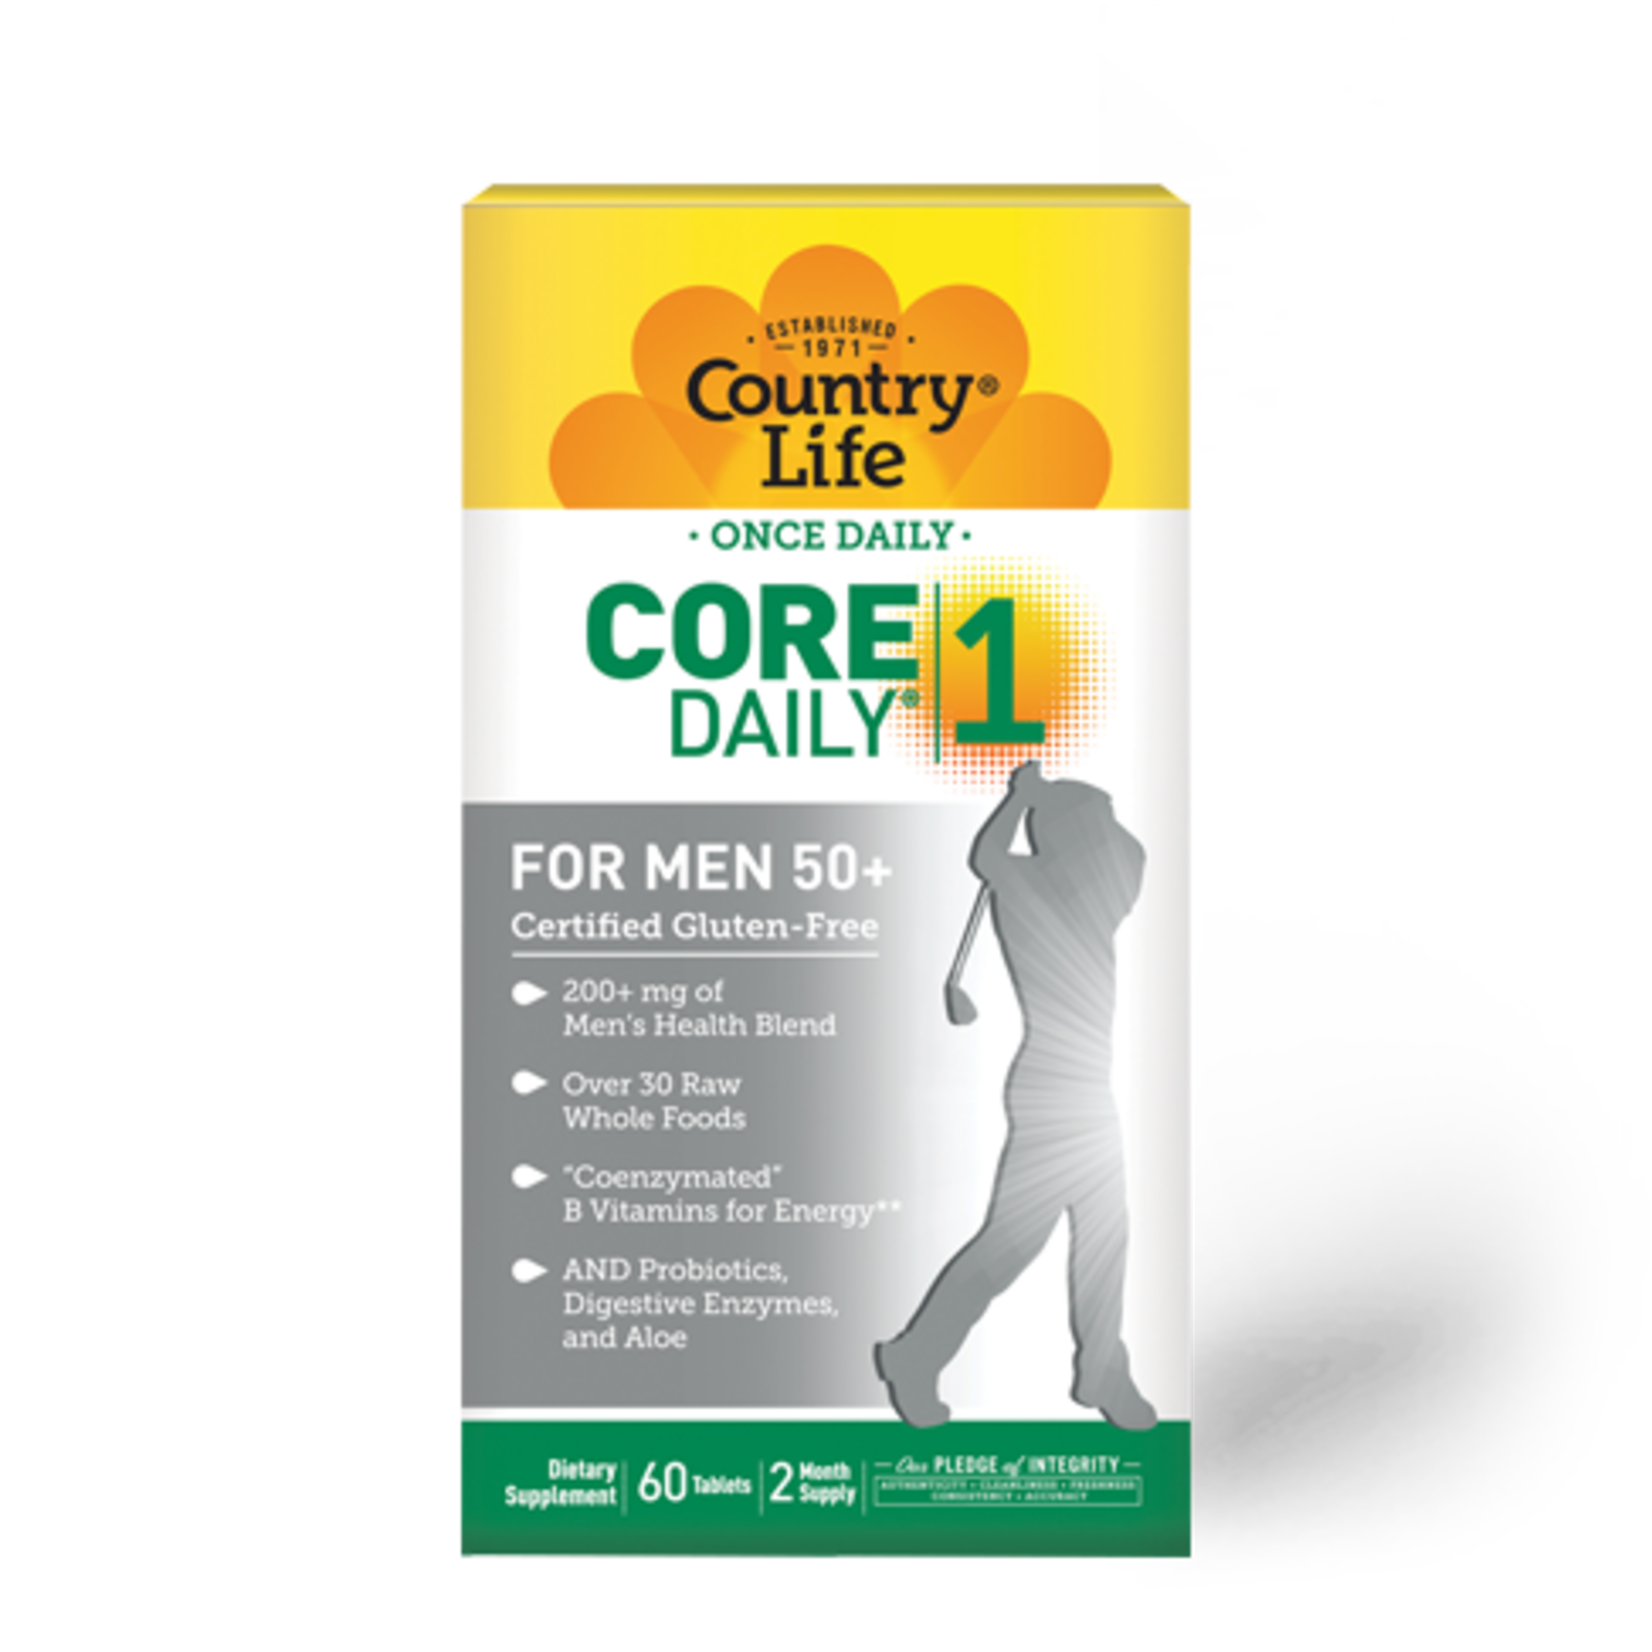 Country Life Country Life Core Daily 1 Multivitamin for Men 50+ 60ct